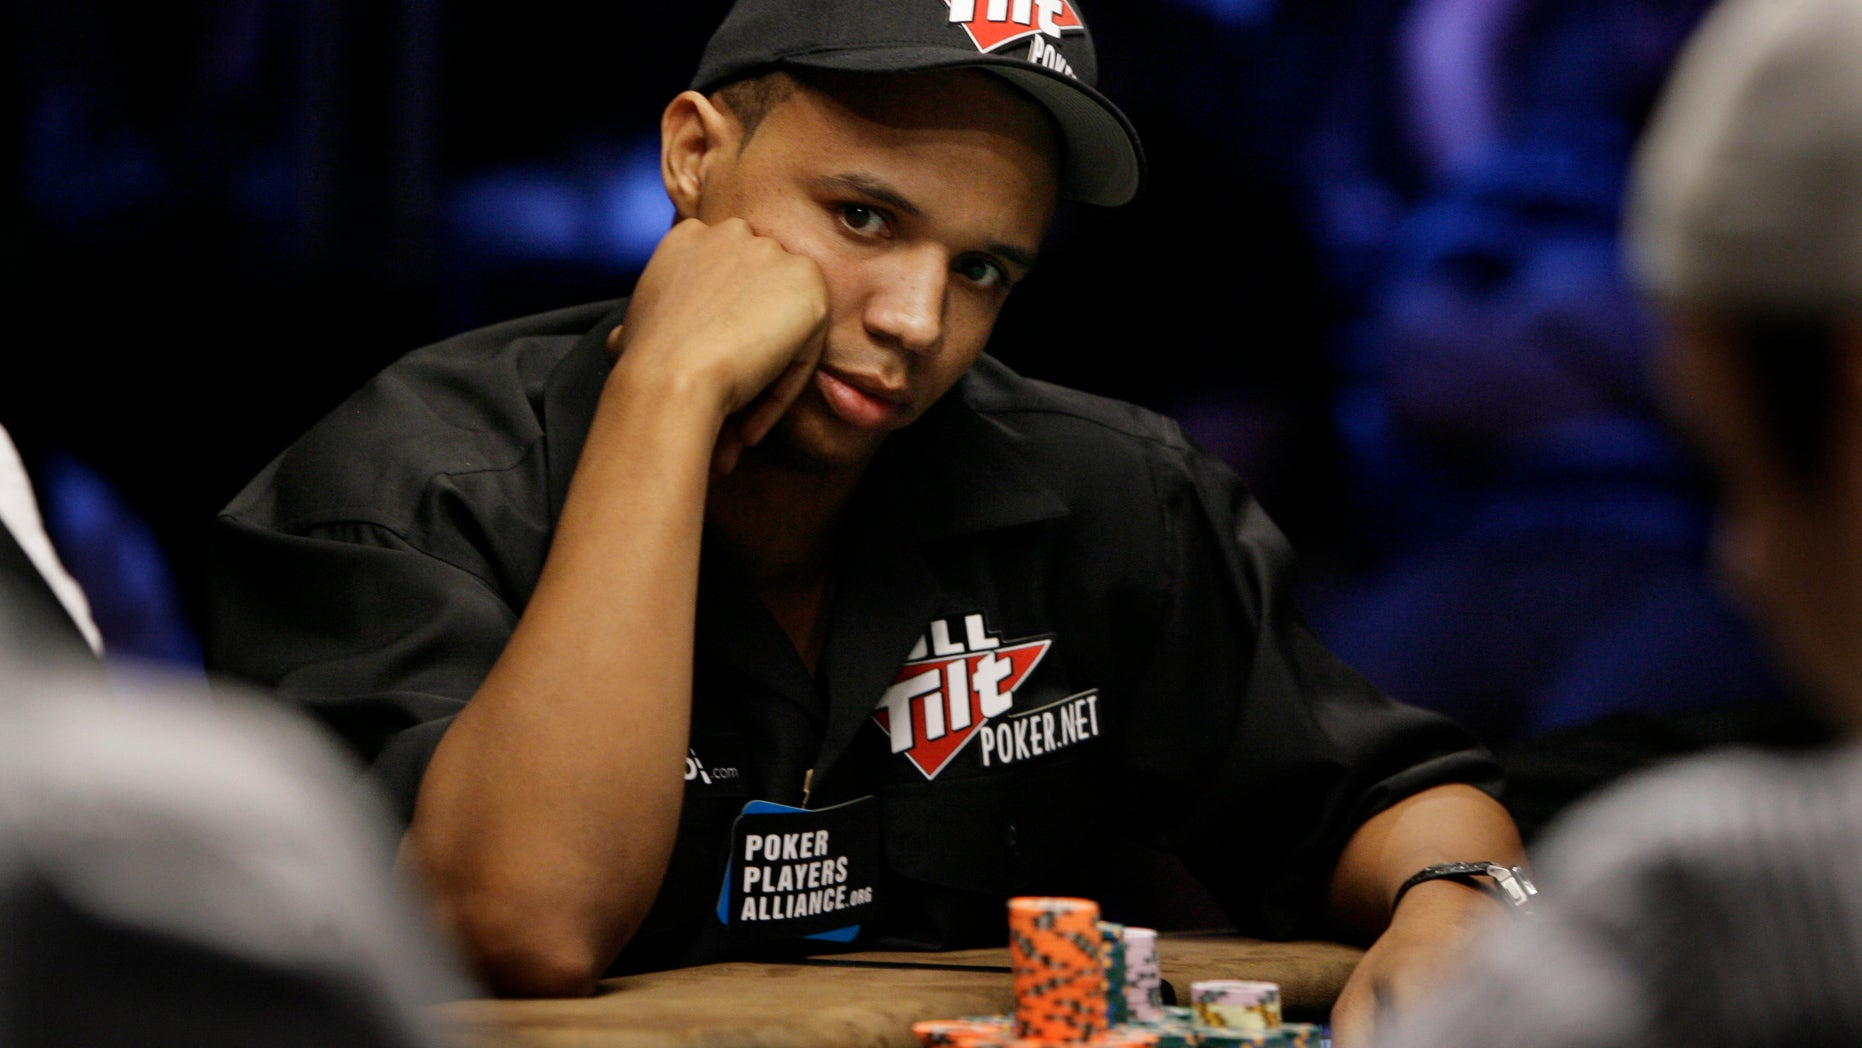 In this July 15, 2009 file photo, Phil Ivey looks up during the World Series of Poker at the Rio Hotel and Casino in Las Vegas.